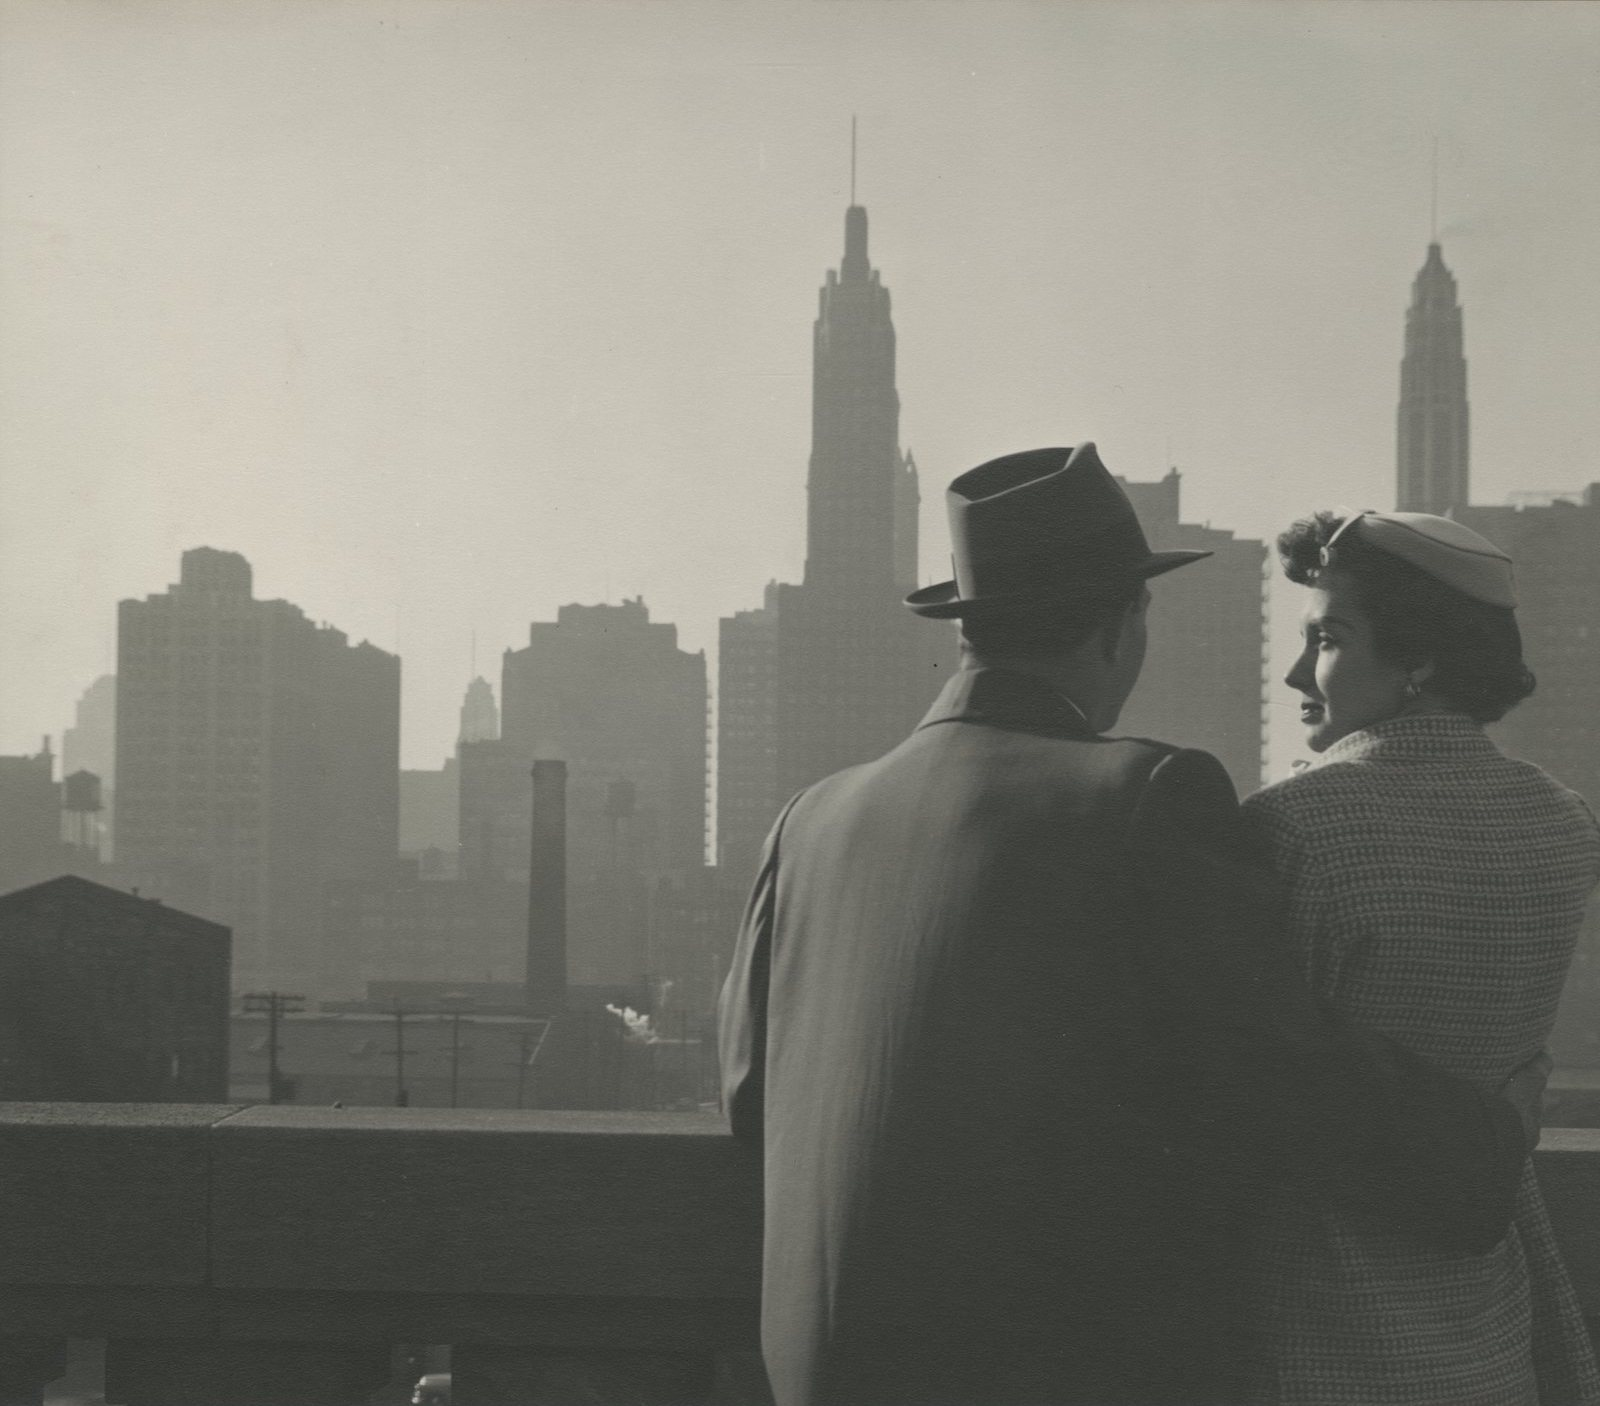 Couple, Chicago, c. 1940